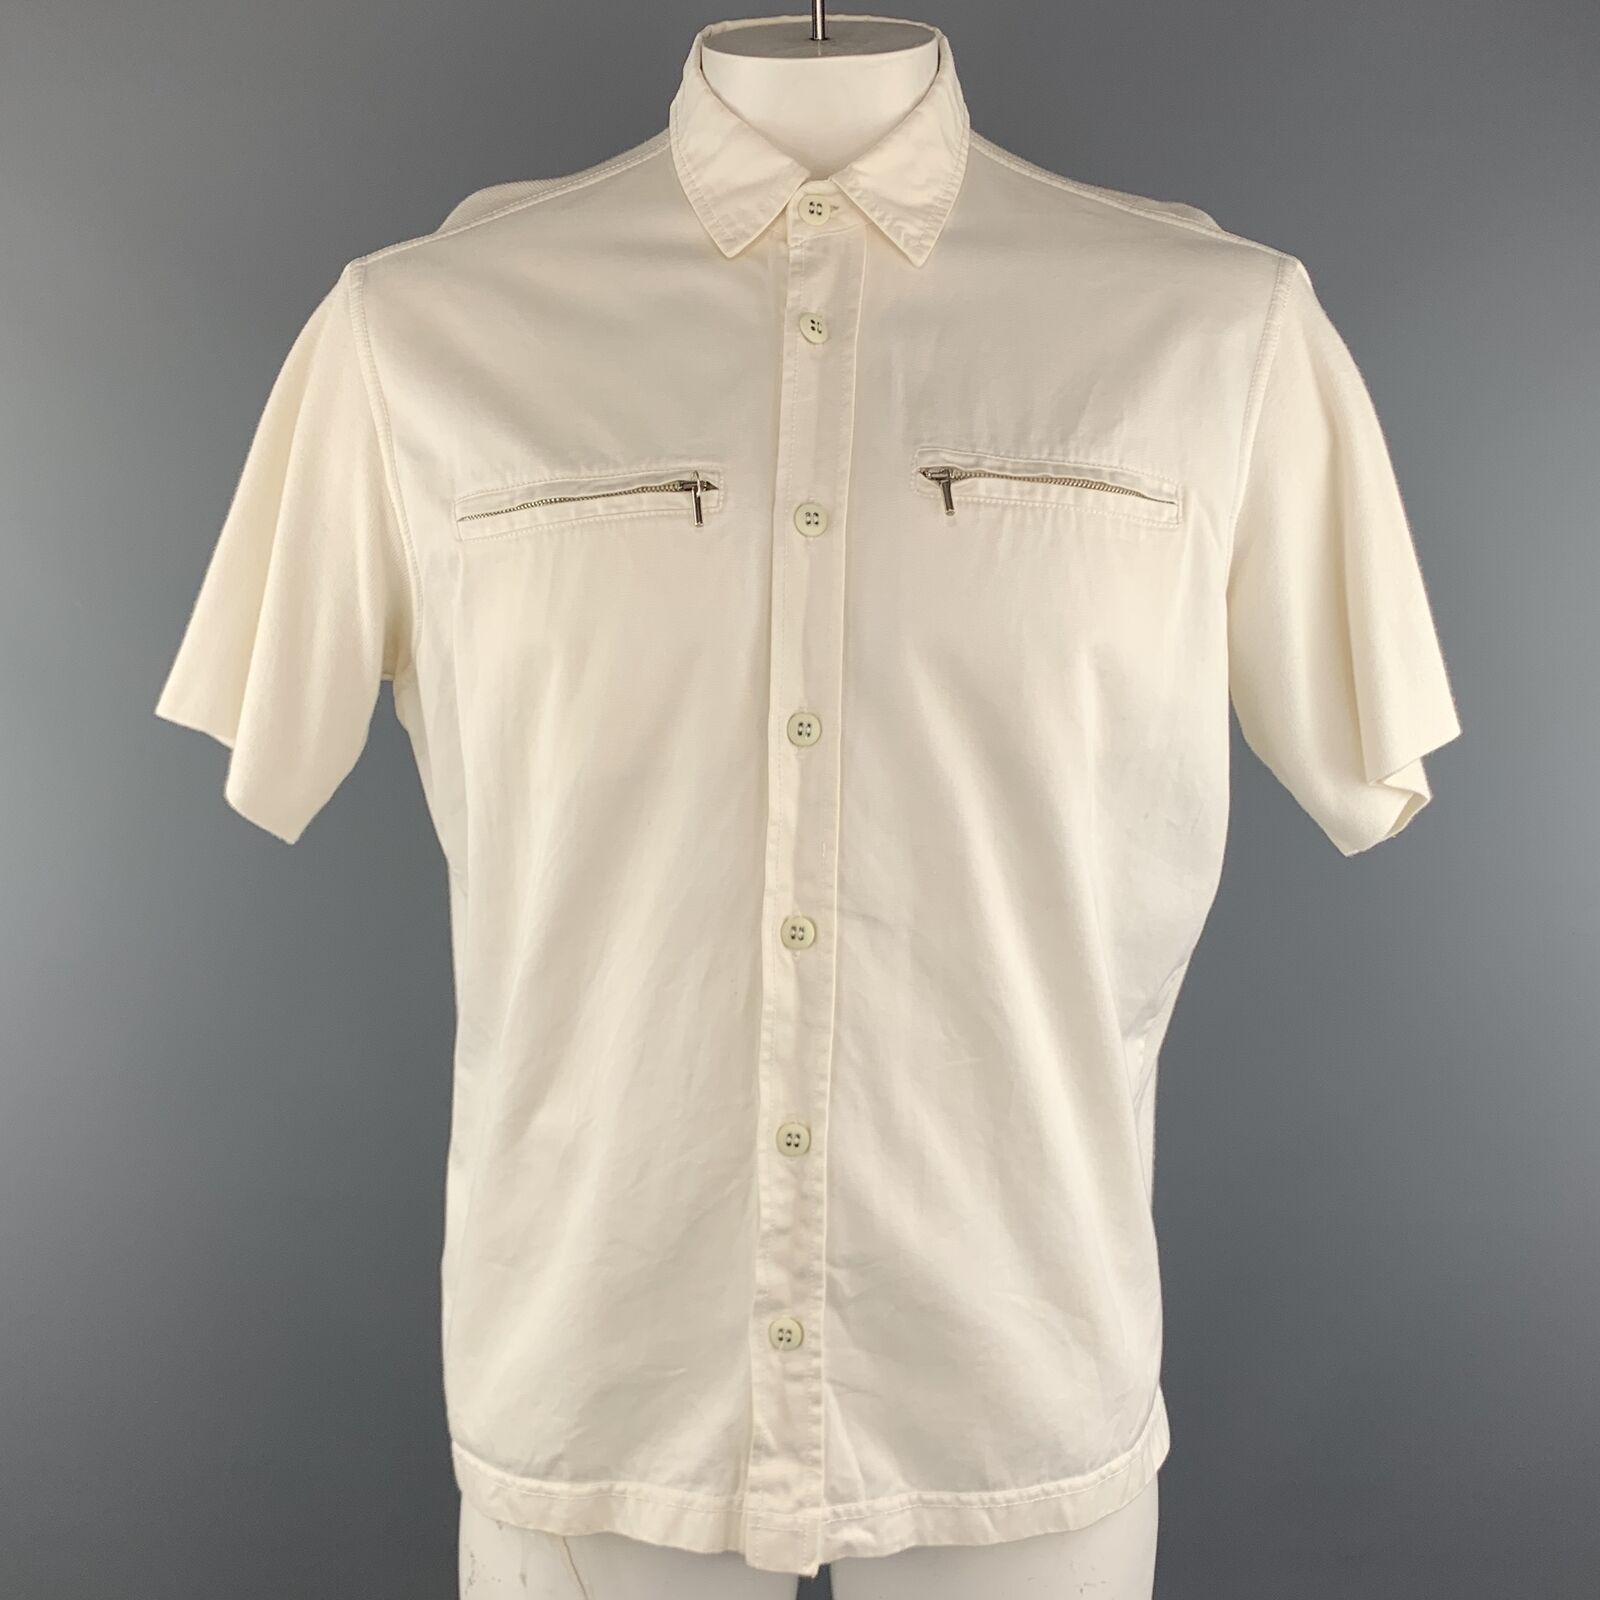 MONTANA Size L Off White Solid Cotton Button Up Short Sleeve Shirt